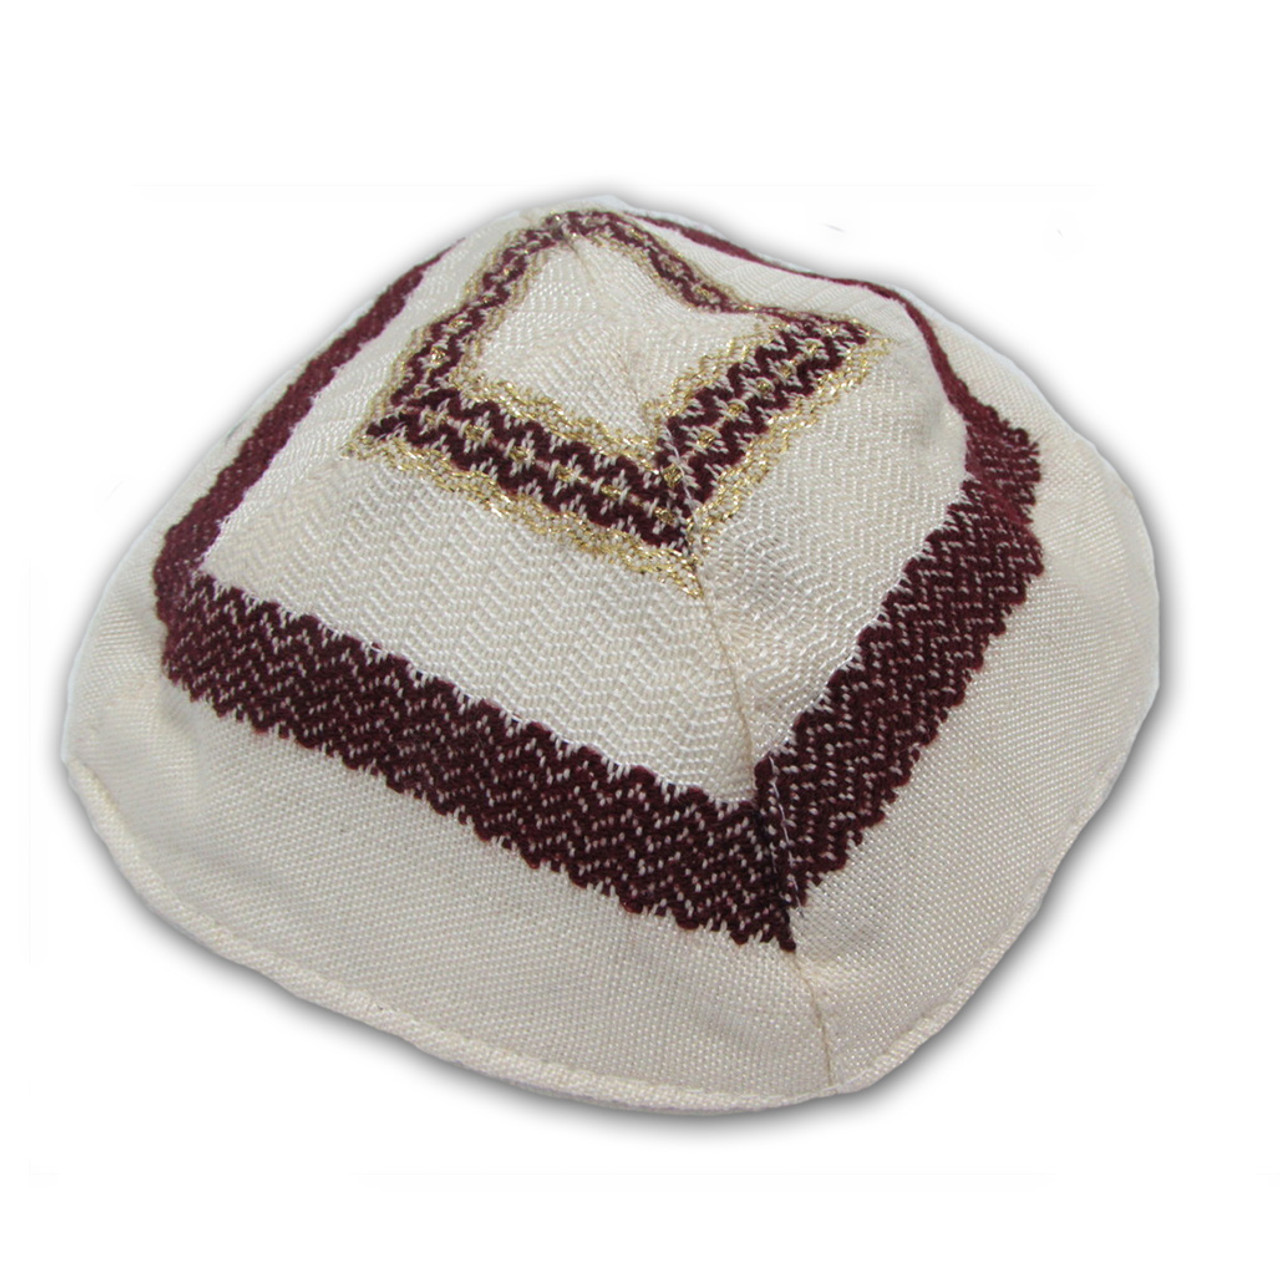 Cotton Kippah - Cream with Maroon & Gold